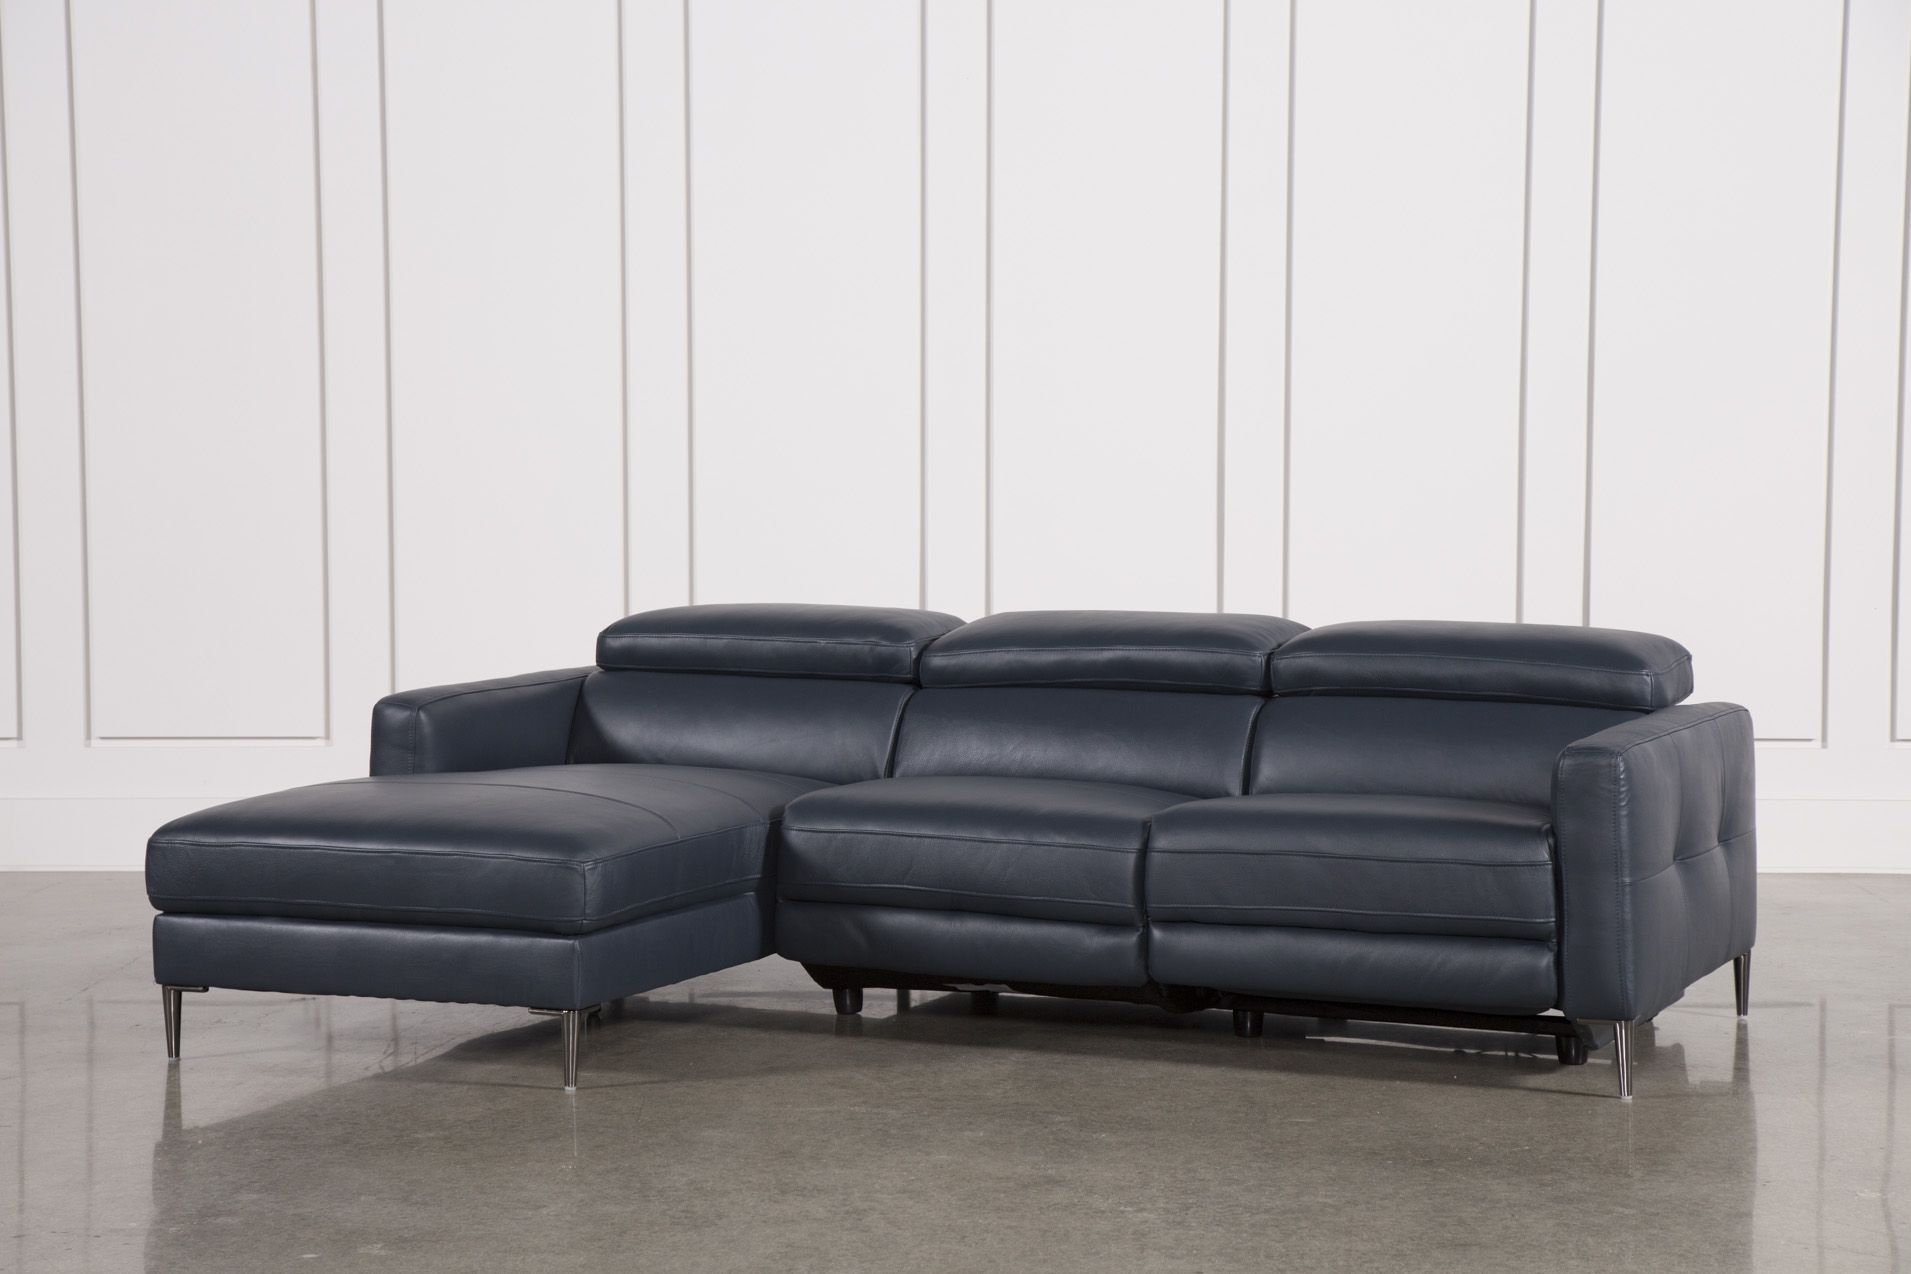 Tara Blue 2 Piece Left Facing Chaise Sofa | Products | Pinterest pertaining to Tenny Dark Grey 2 Piece Right Facing Chaise Sectionals With 2 Headrest (Image 27 of 30)